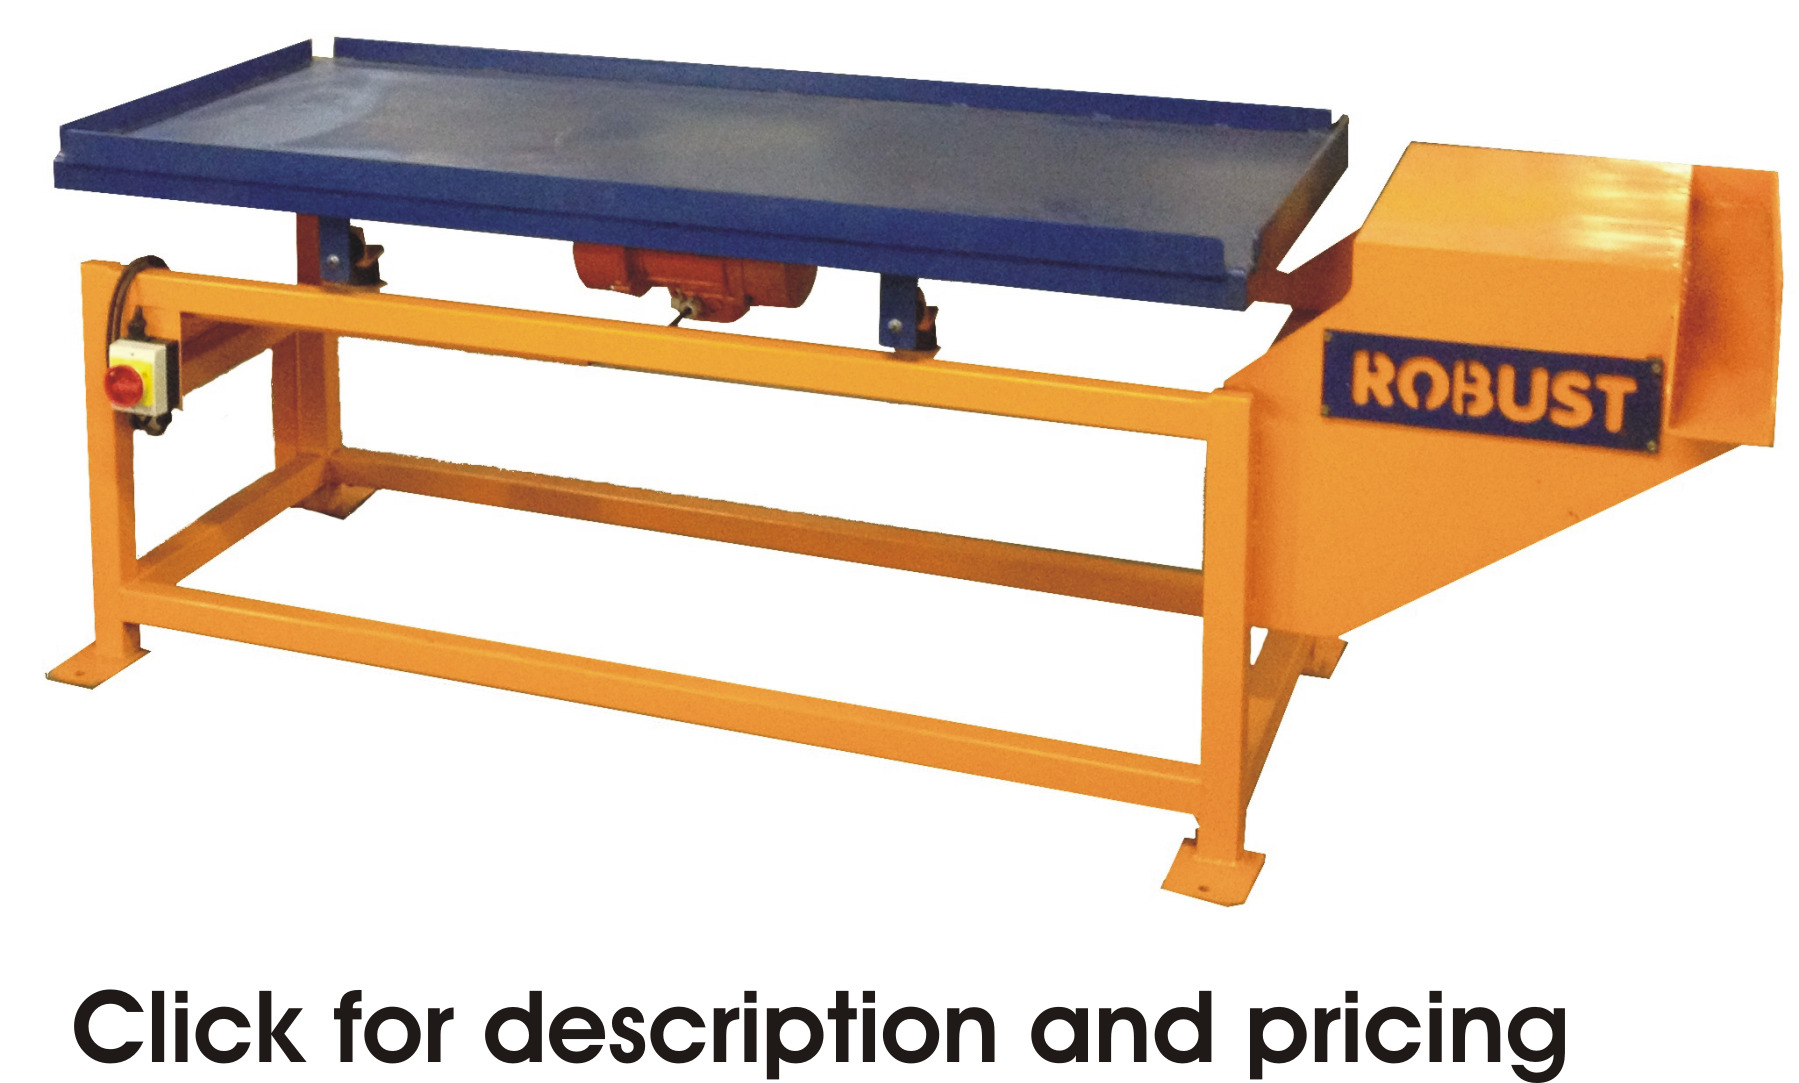 robust-wet-cast-vibrating-table